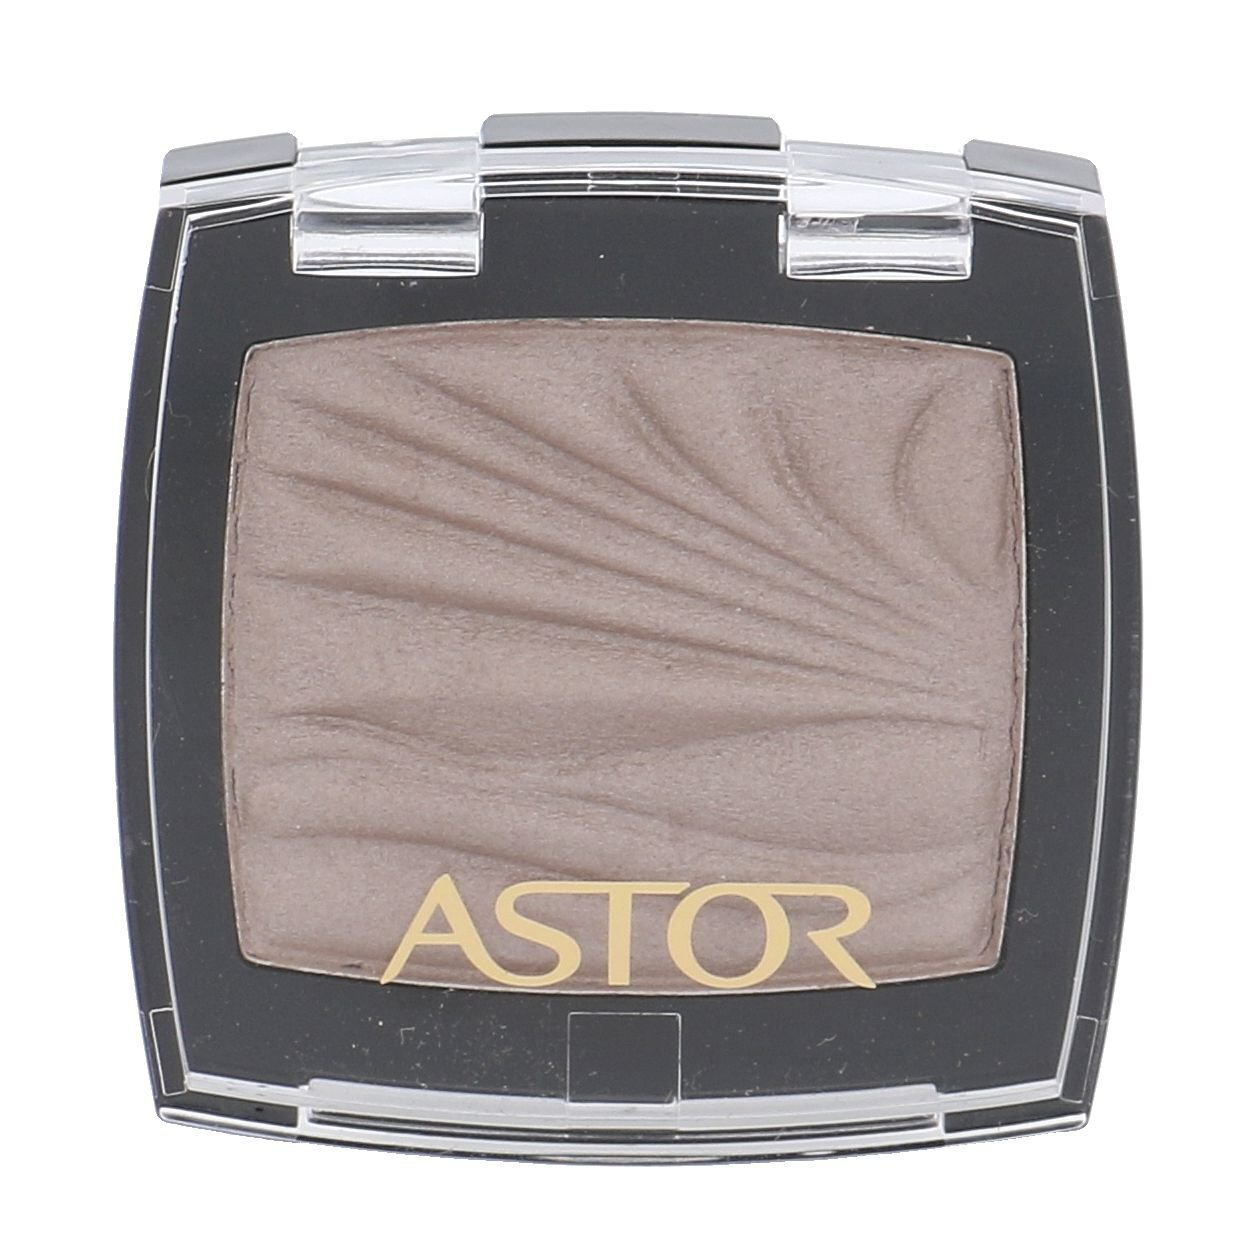 ASTOR Eye Artist Cosmetic 4ml 830 Warm Taupe